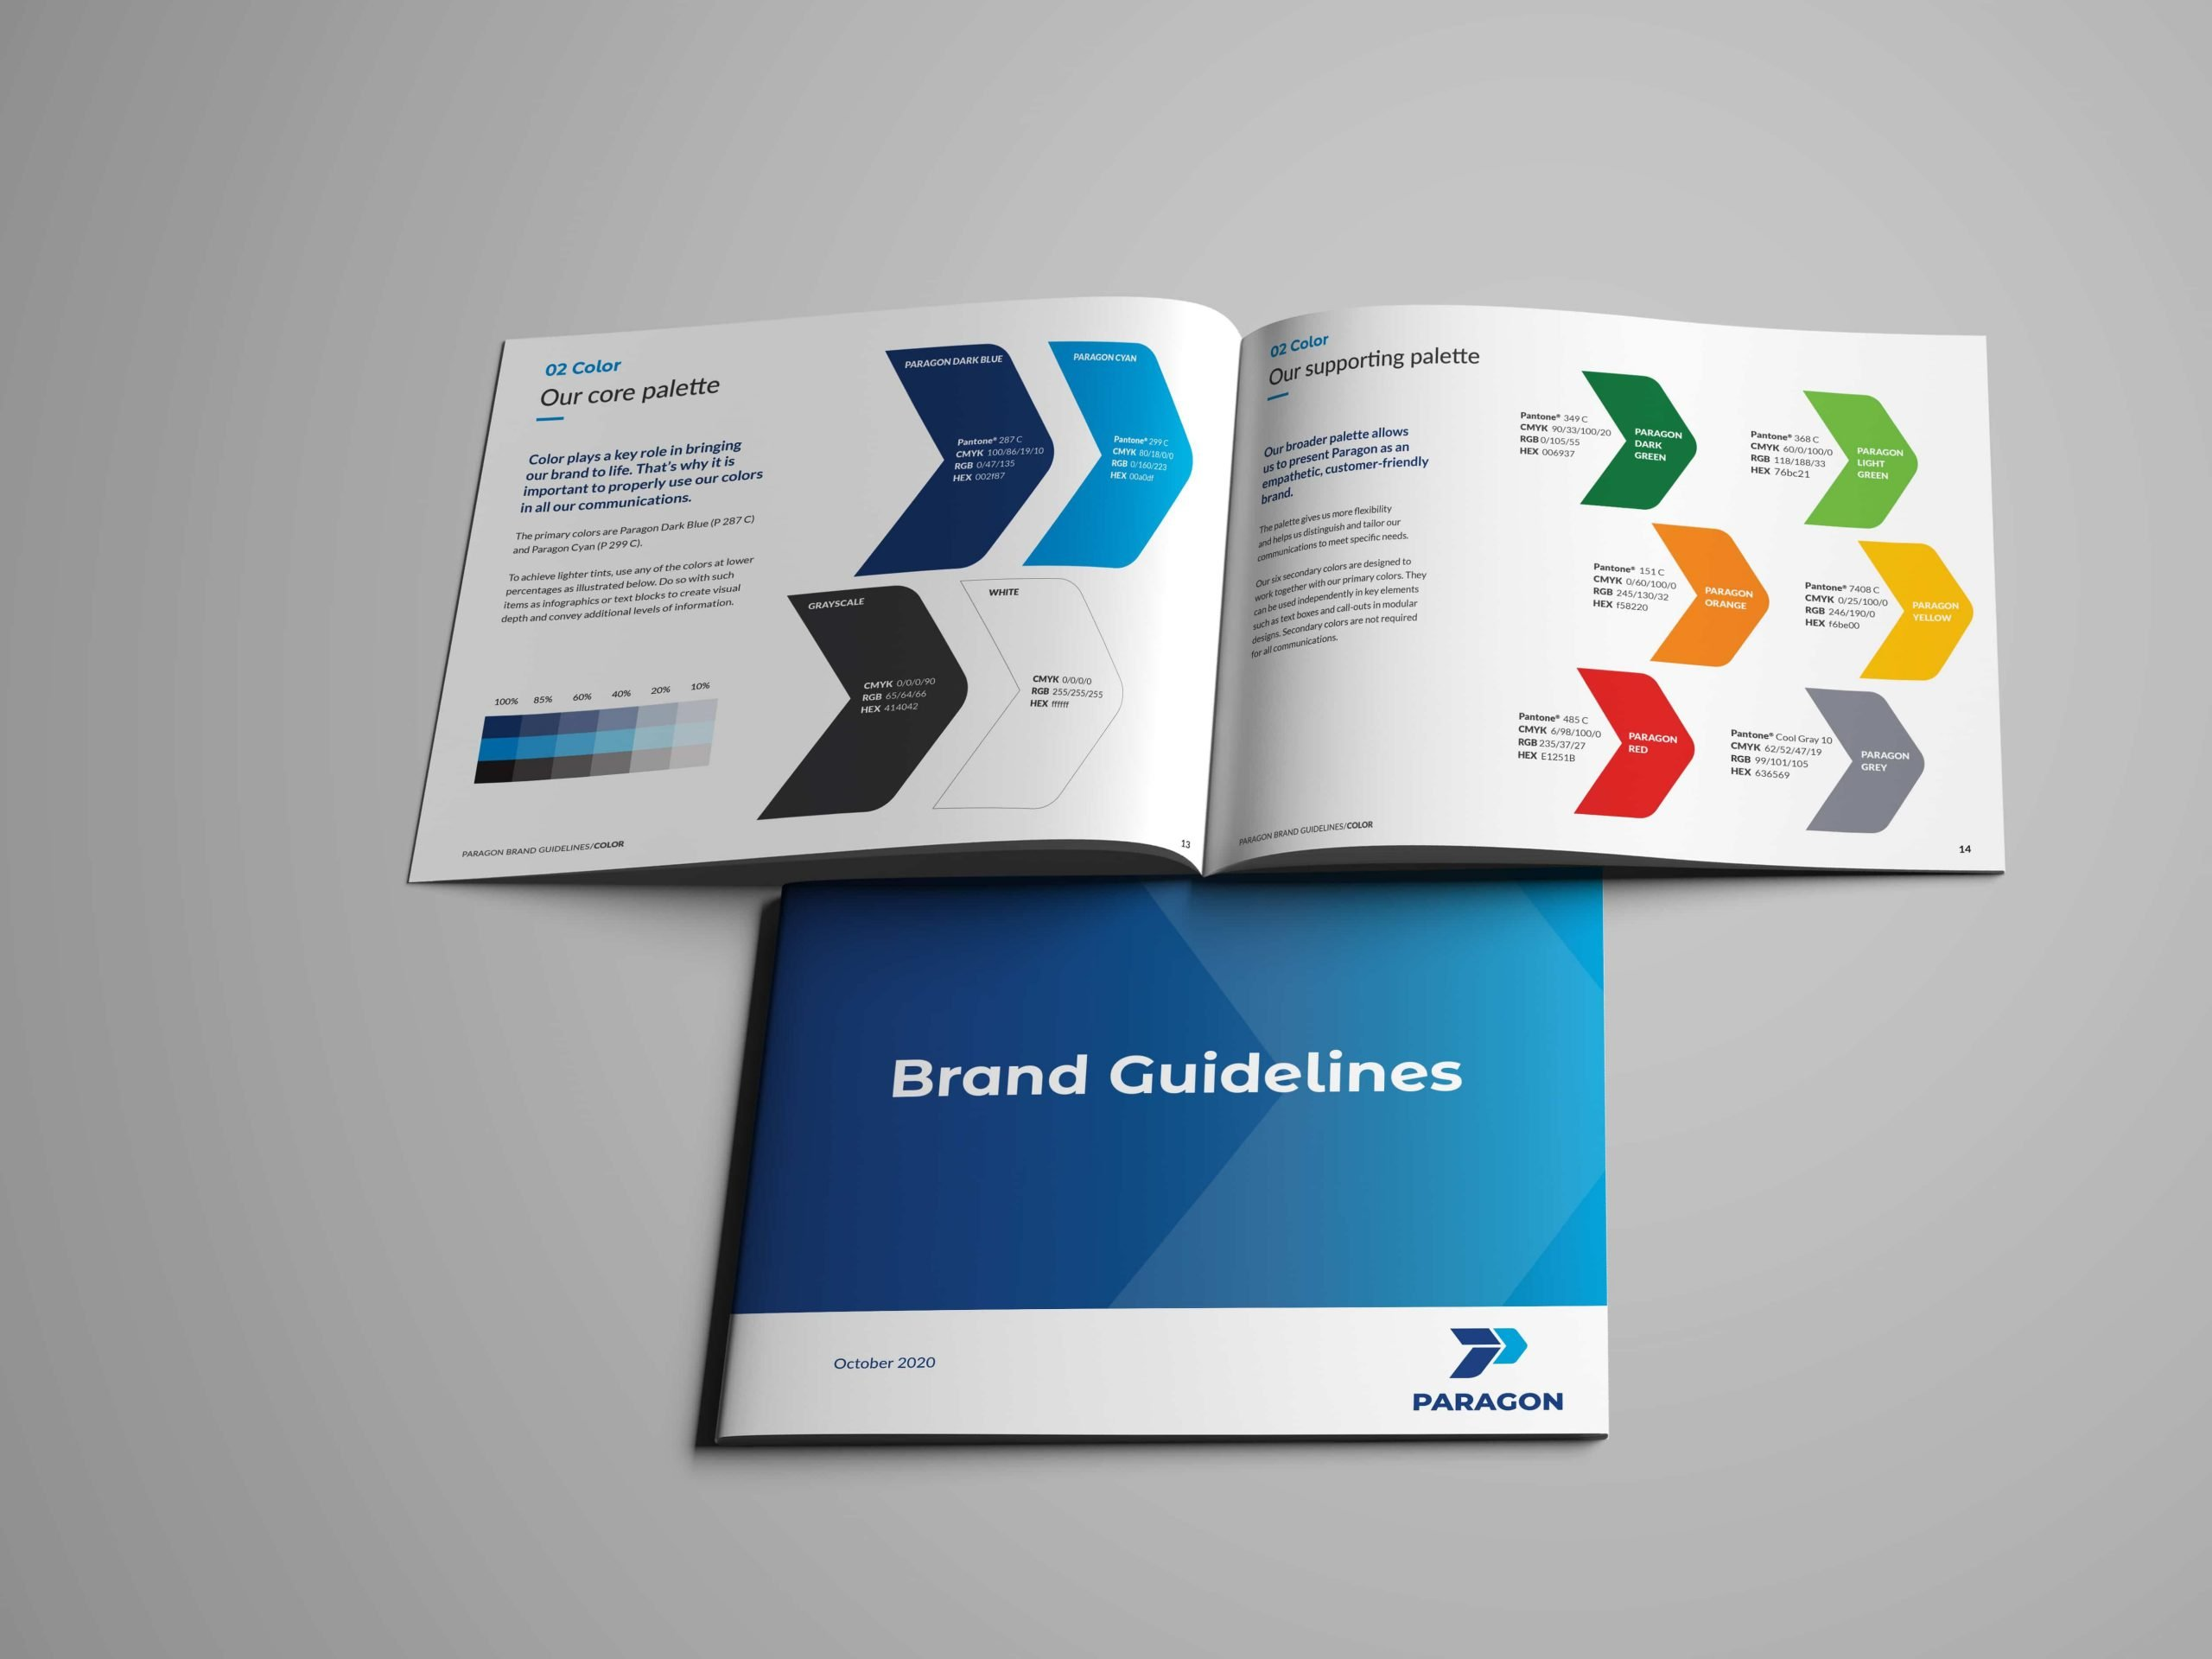 Paragon Integrated services brand guidelines